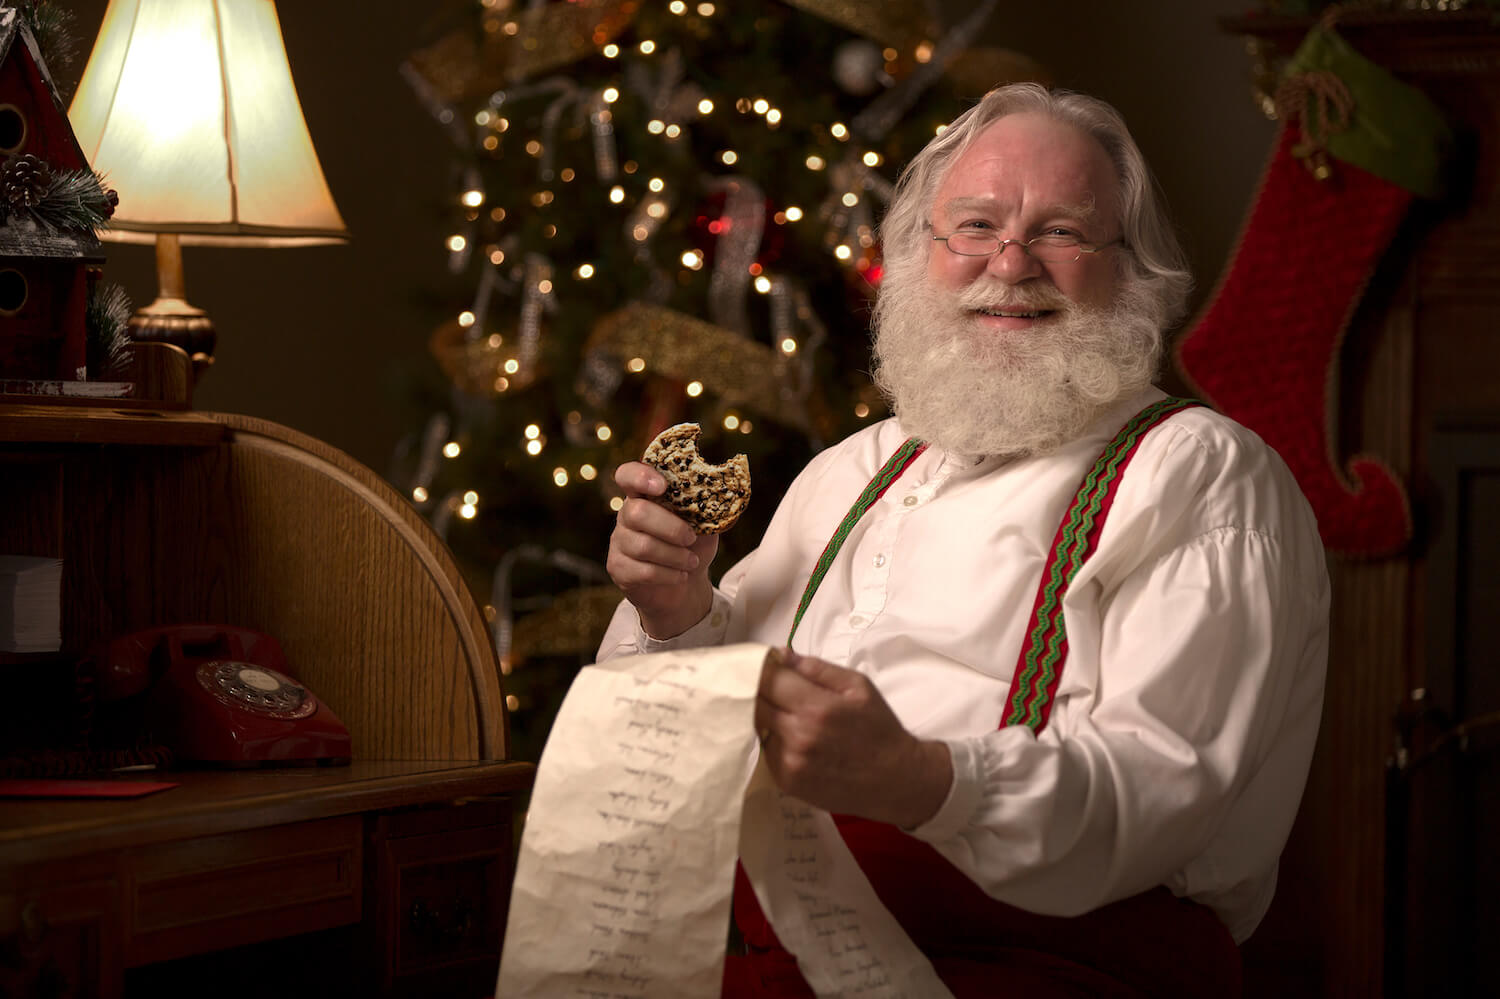 Photo of Santa holding a long paper list